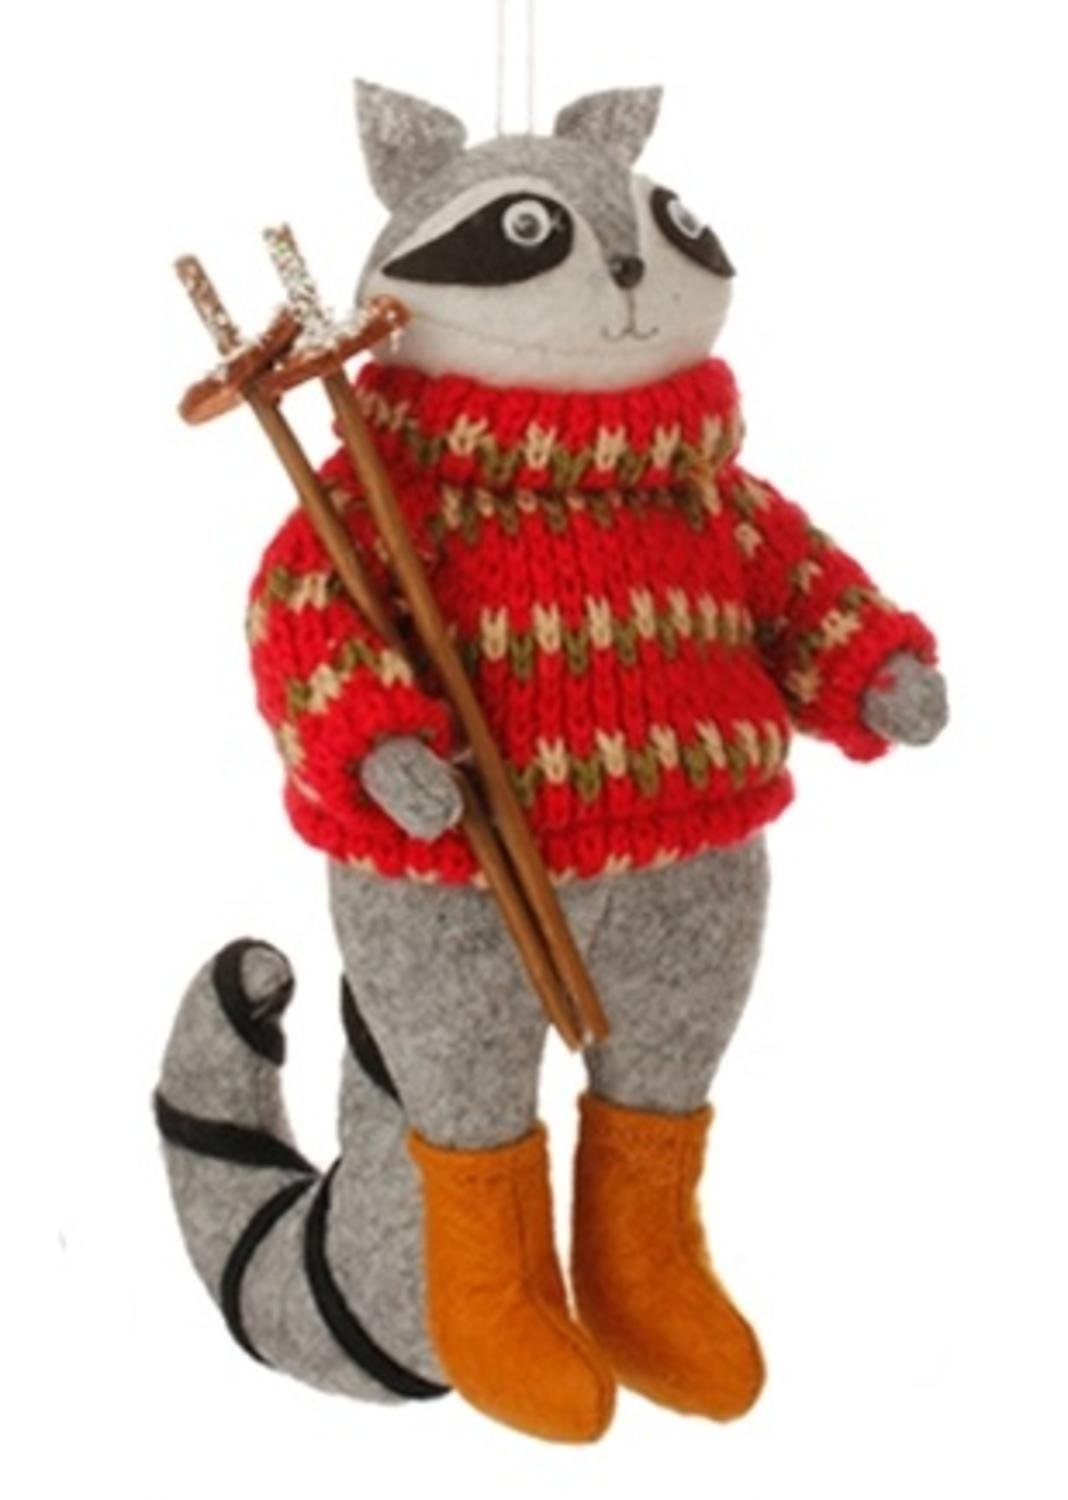 7'' Country Cabin Stuffed Animal Raccon with Red Sweater and Ski Poles Christmas Figure Ornament